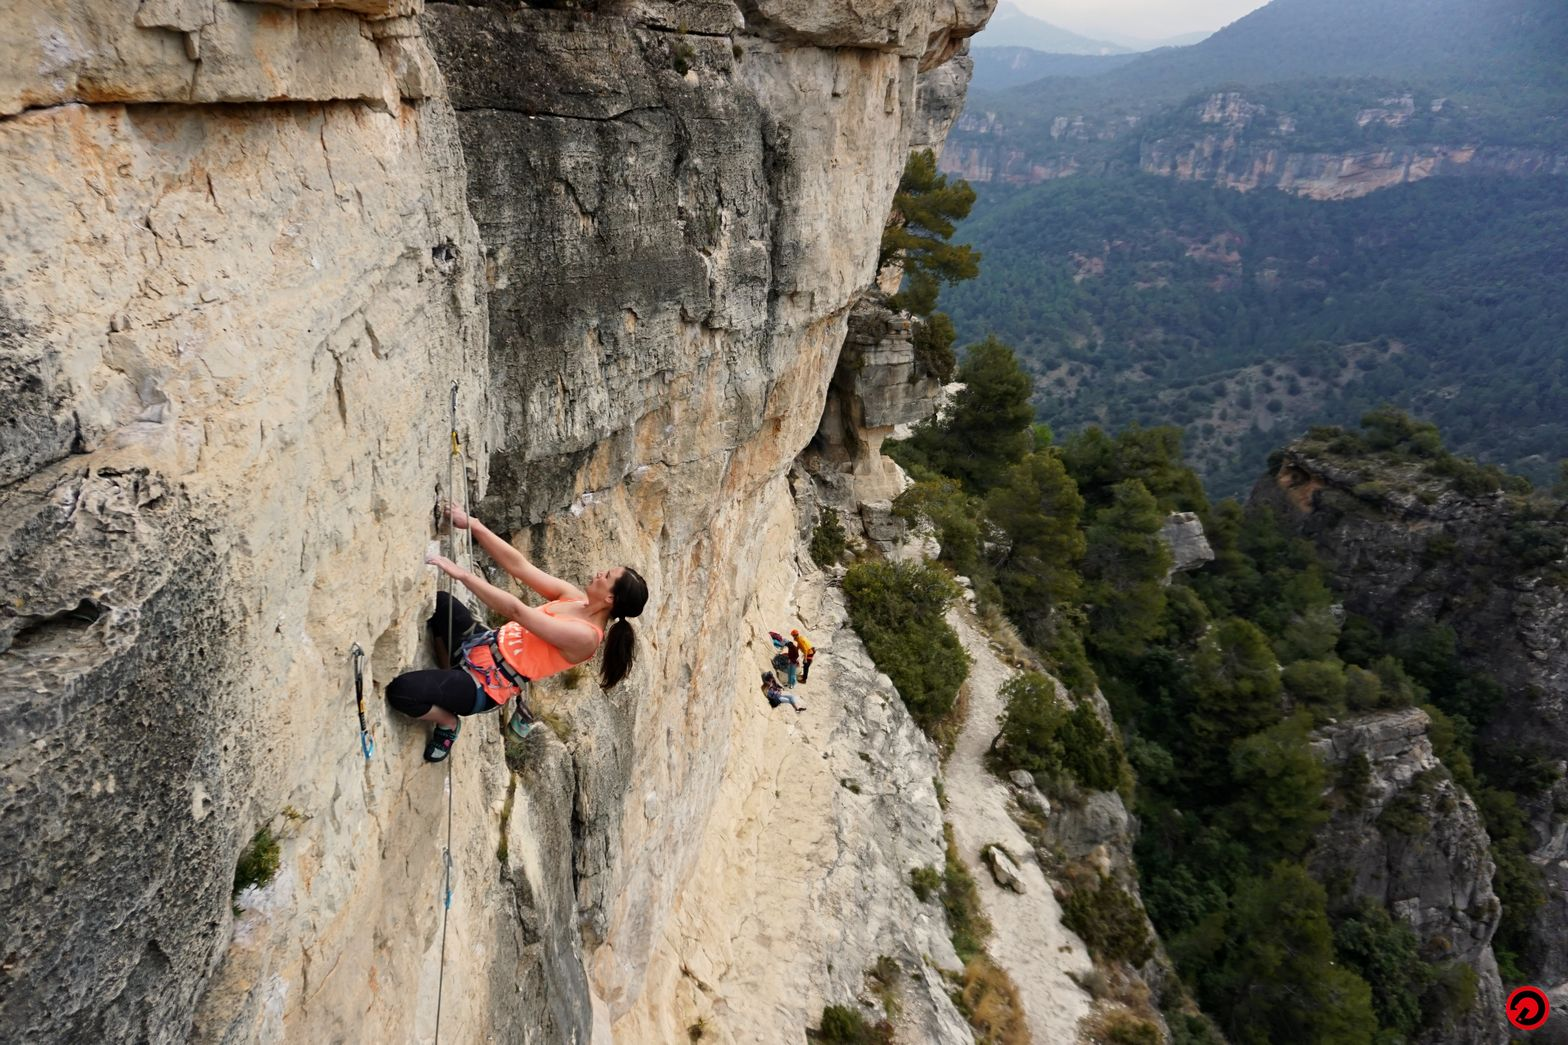 Spanish rock climbing road trip: Best sport crags in Spain